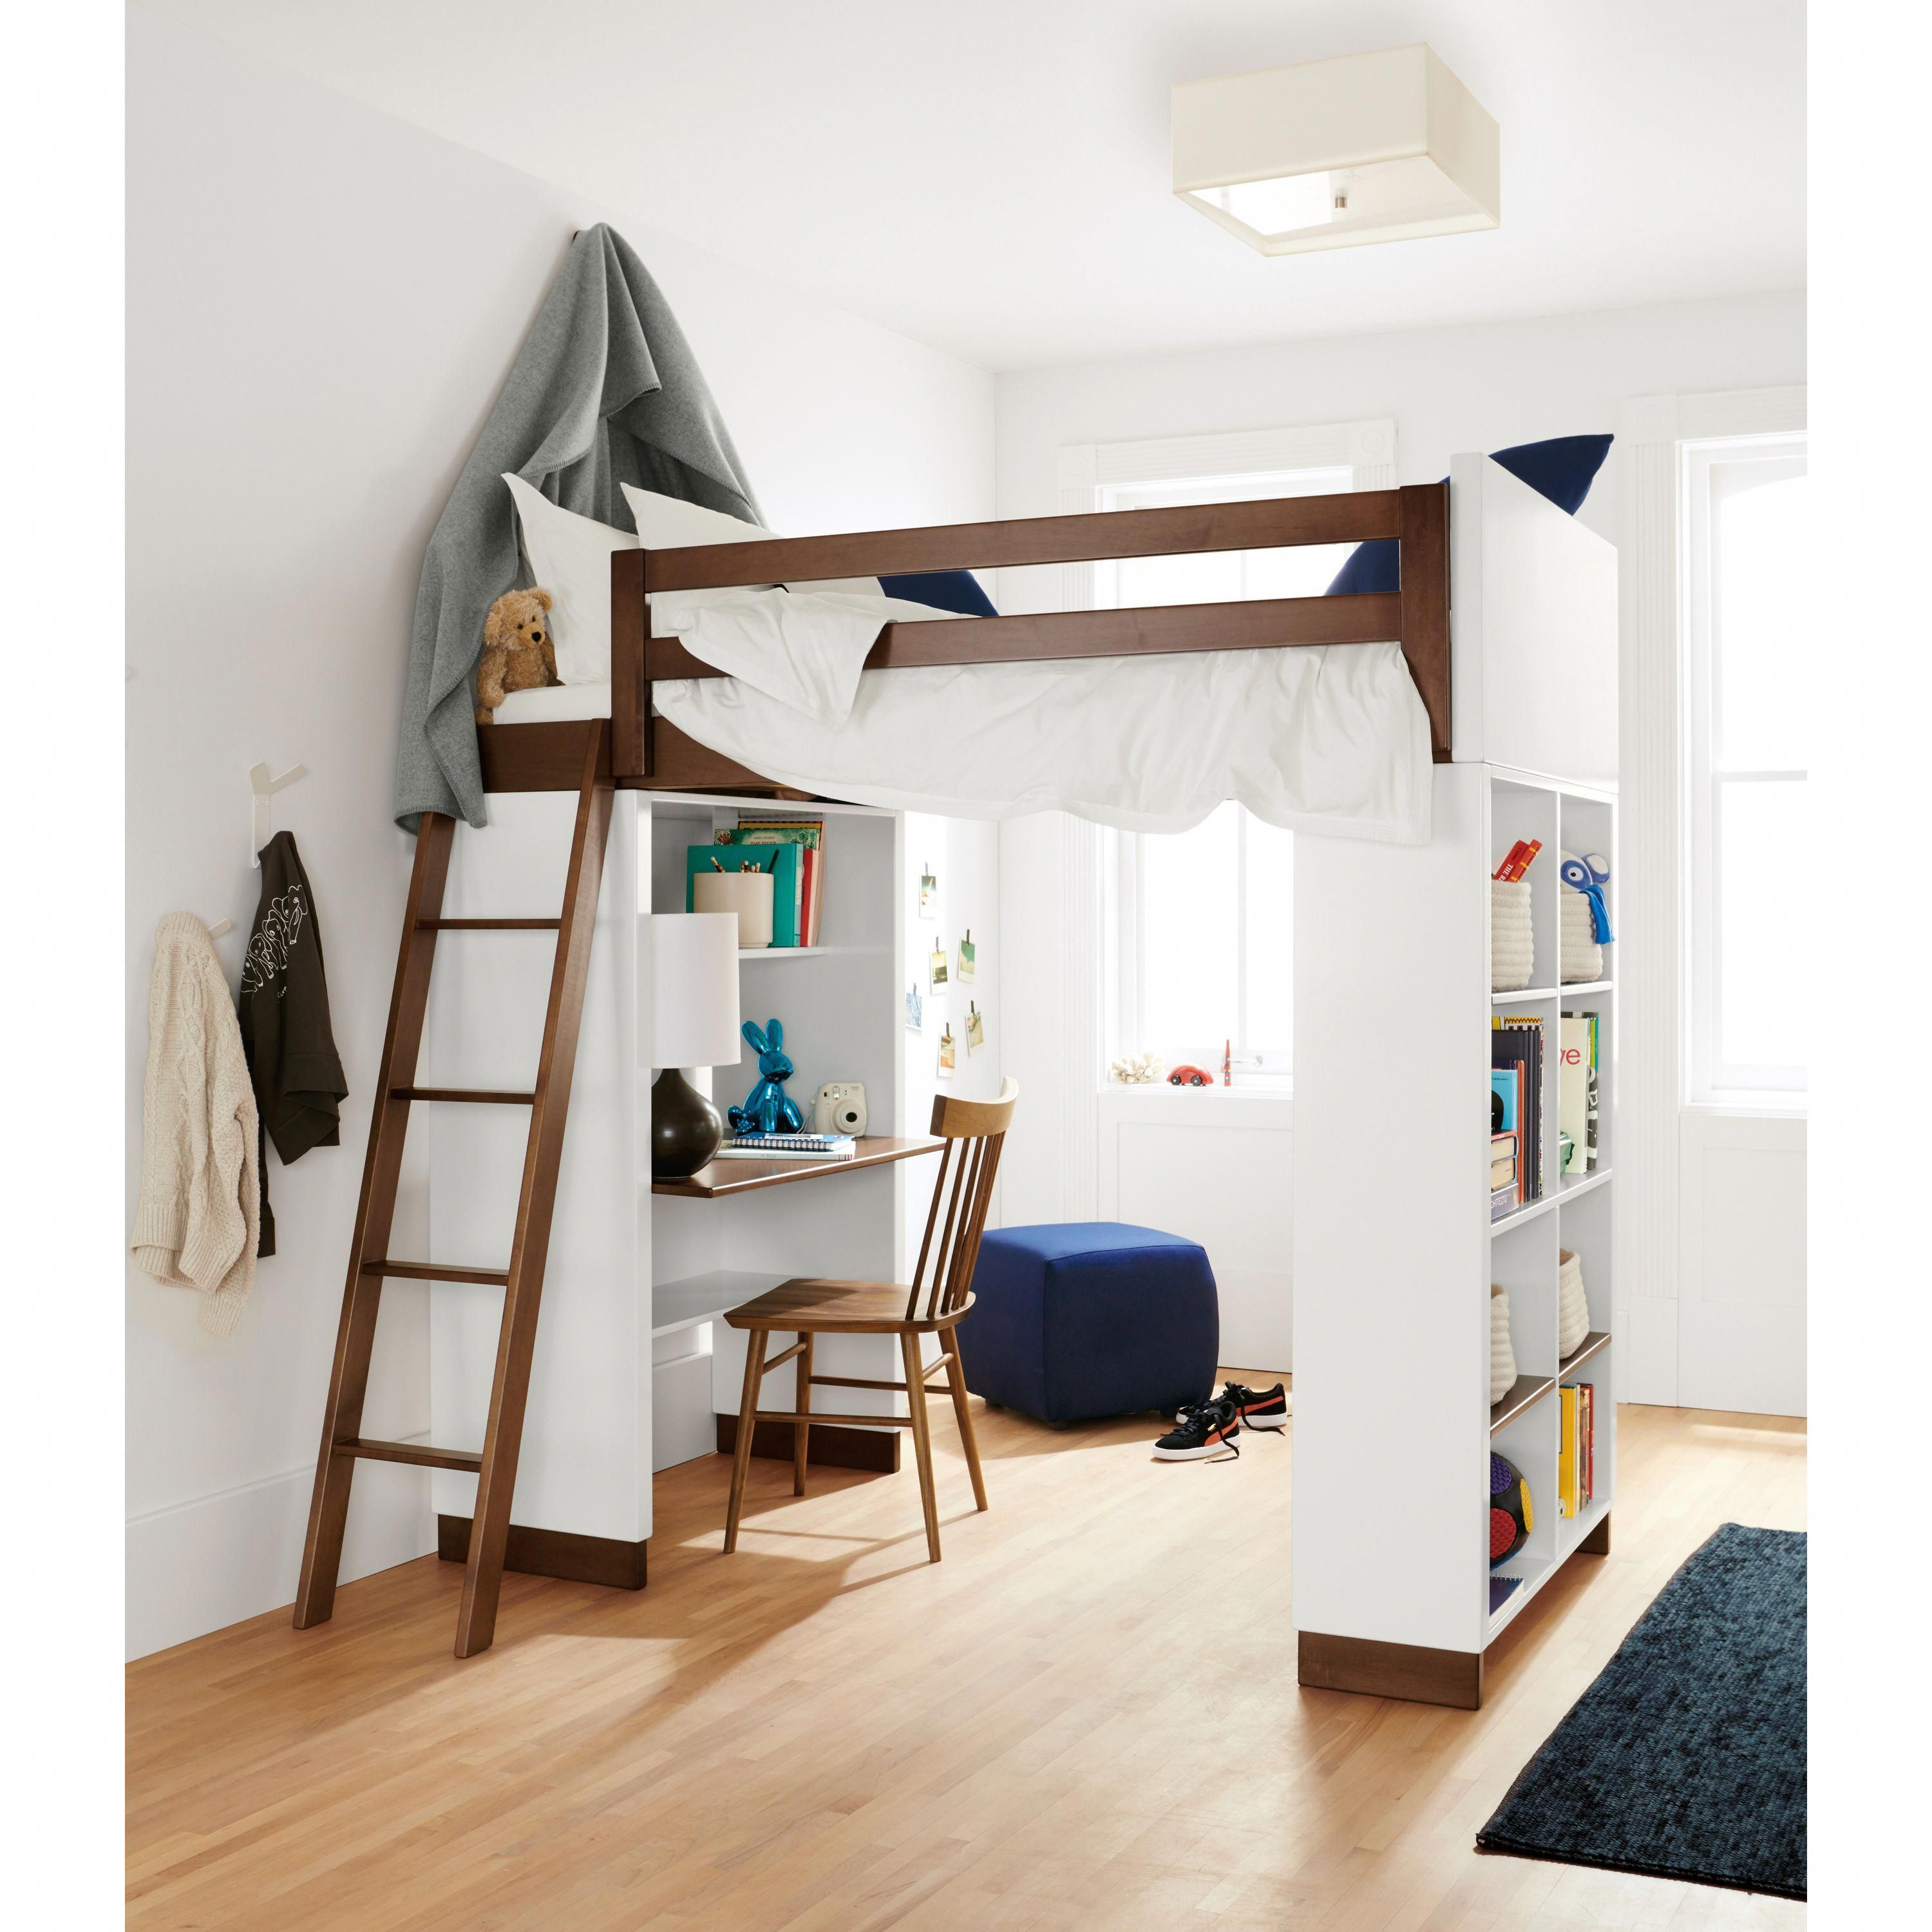 Moda Kids Loft With Shelves Modern Bunk Beds Loft Beds